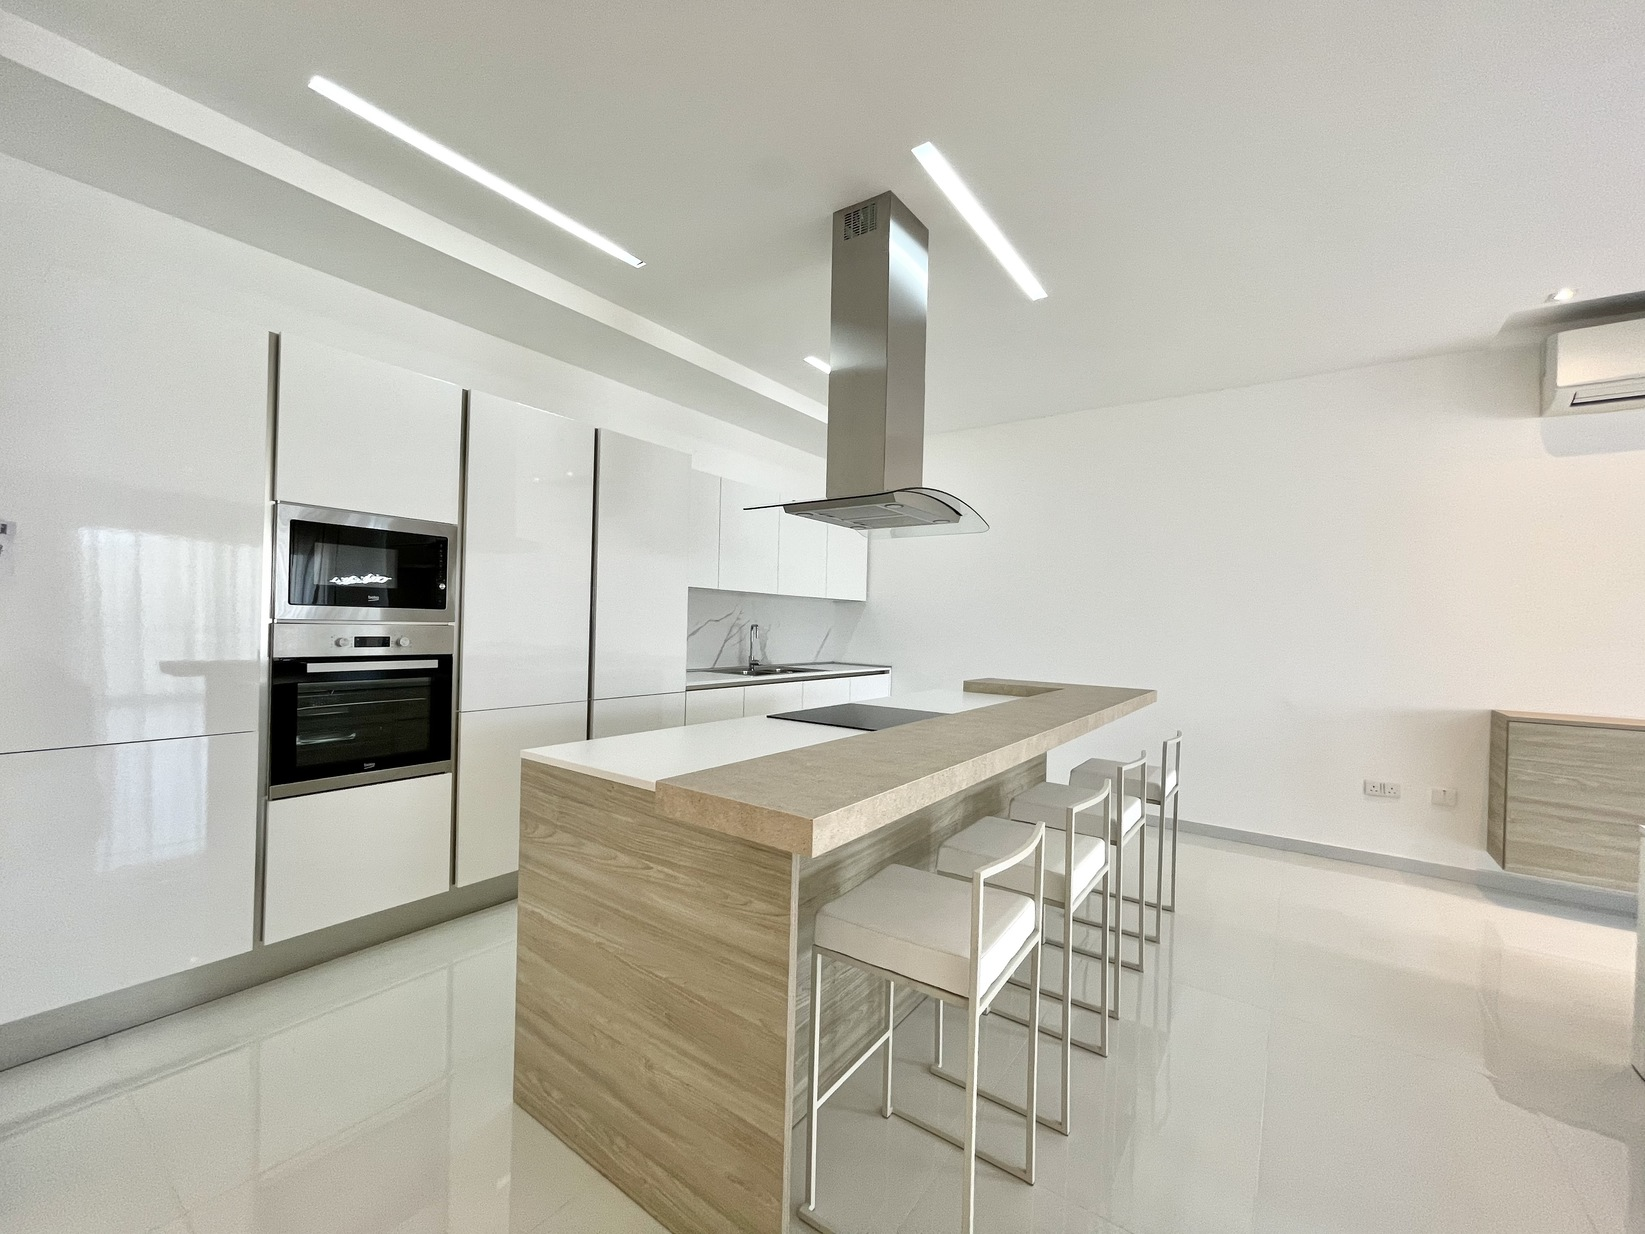 3 bed Apartment For Rent in Zejtun, Zejtun - thumb 8